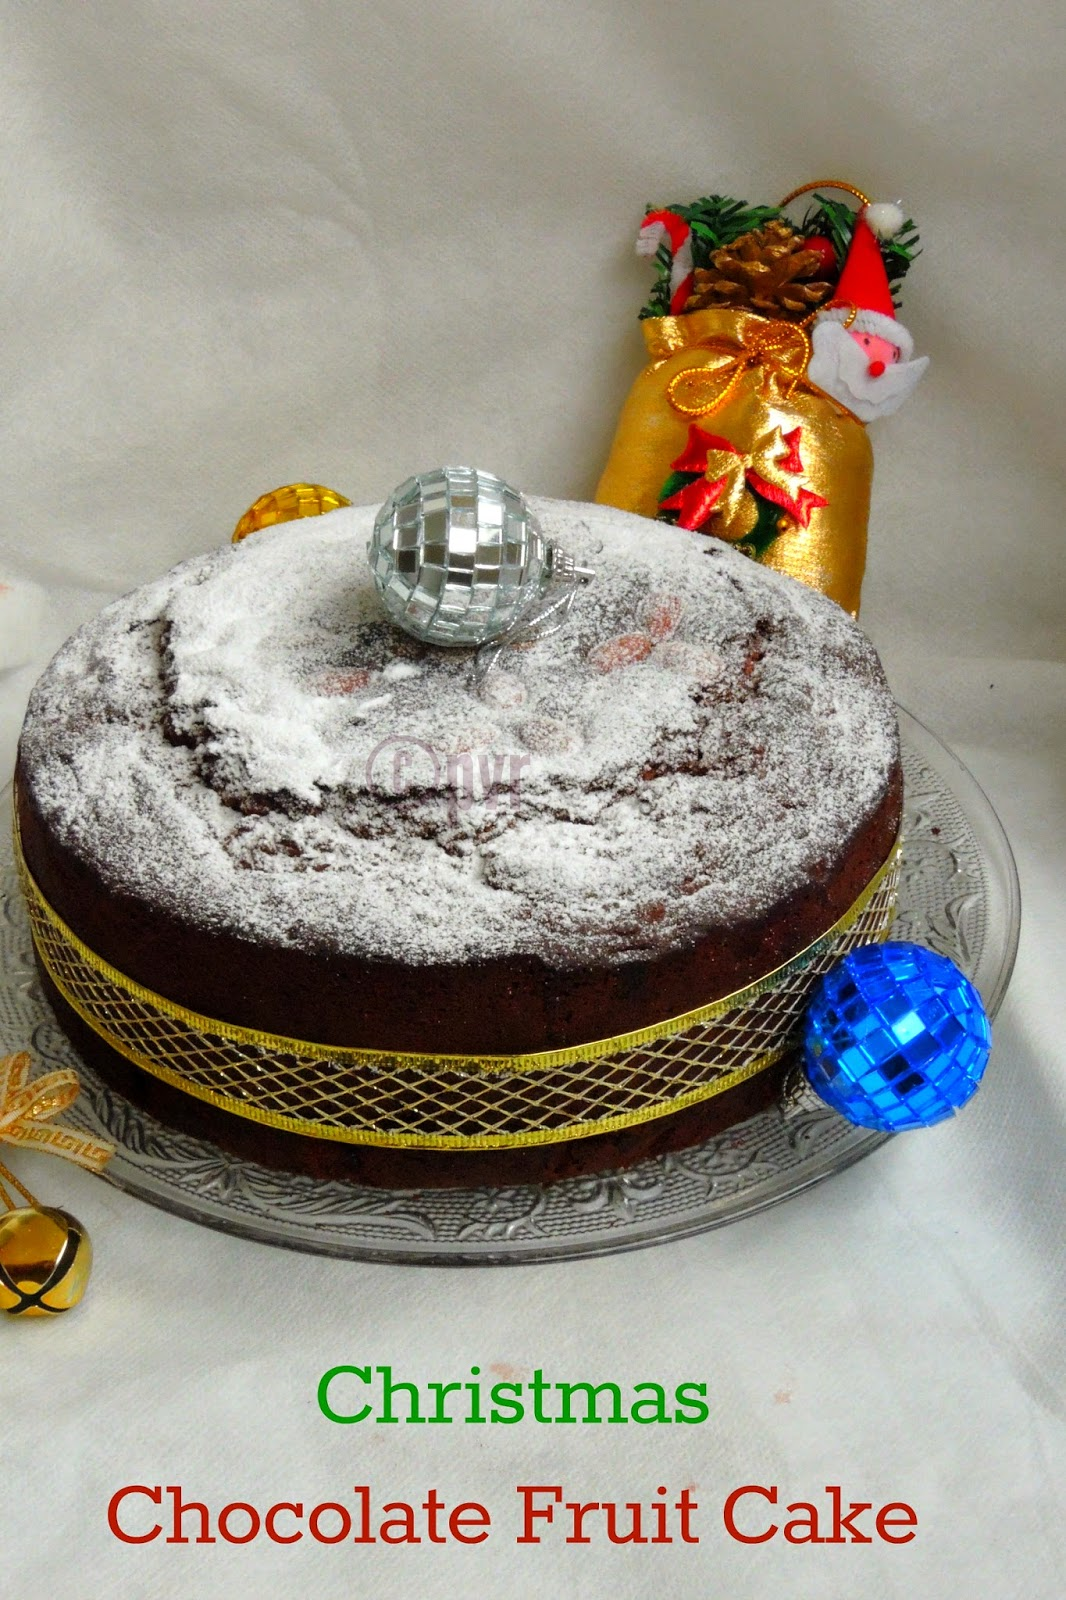 Rich Christmas Chocolate fruit cake